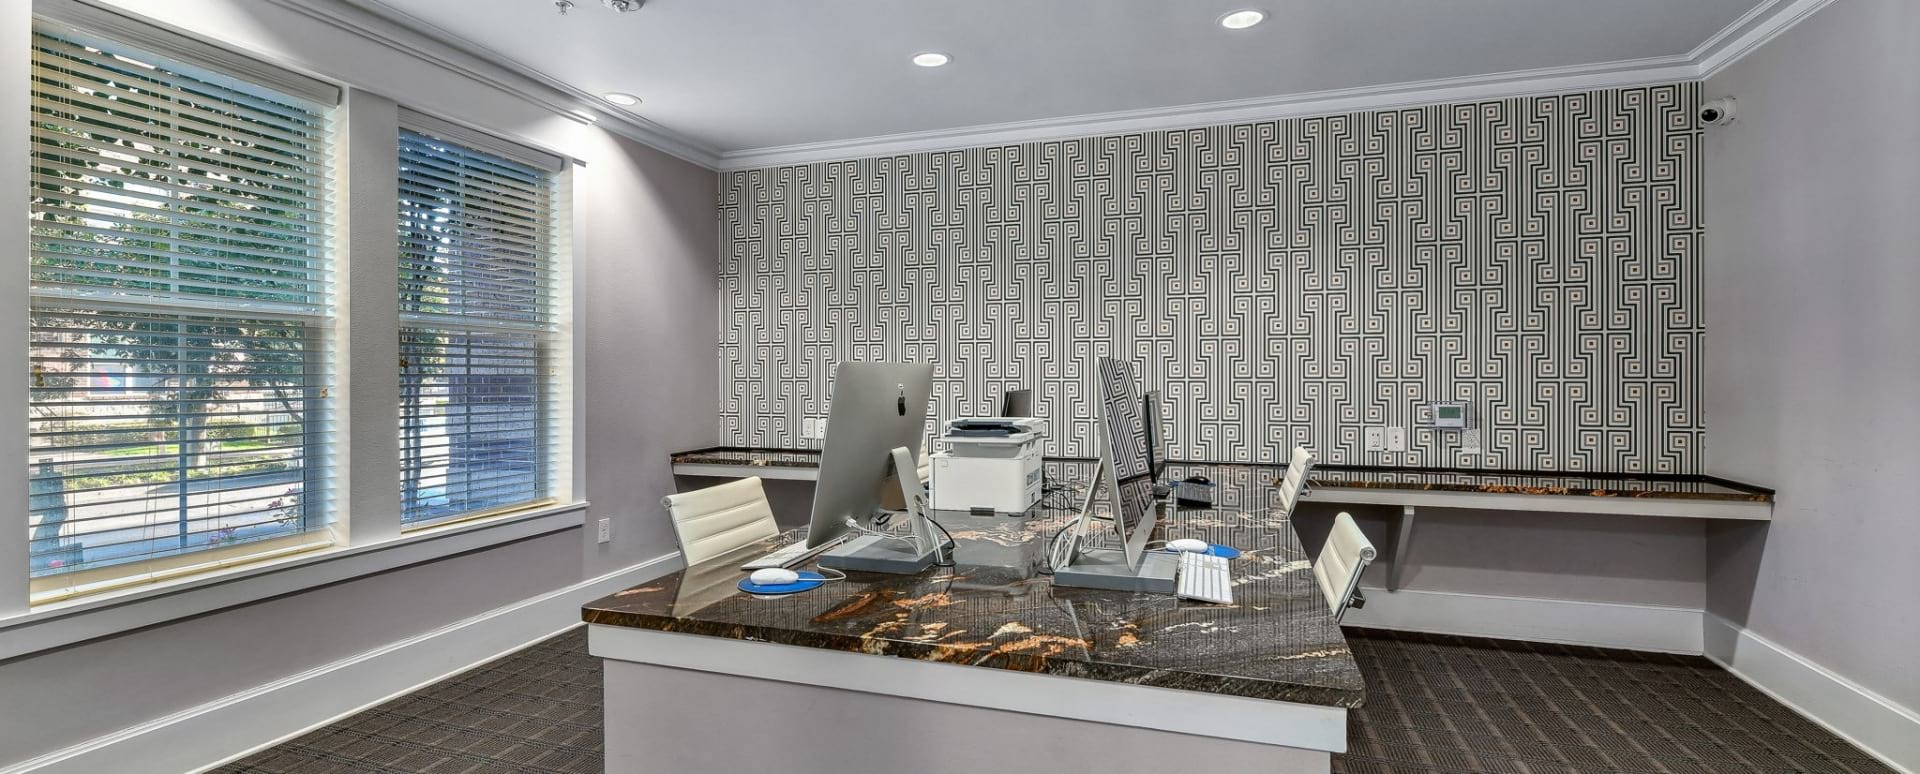 Oak Lawn apartments with business center